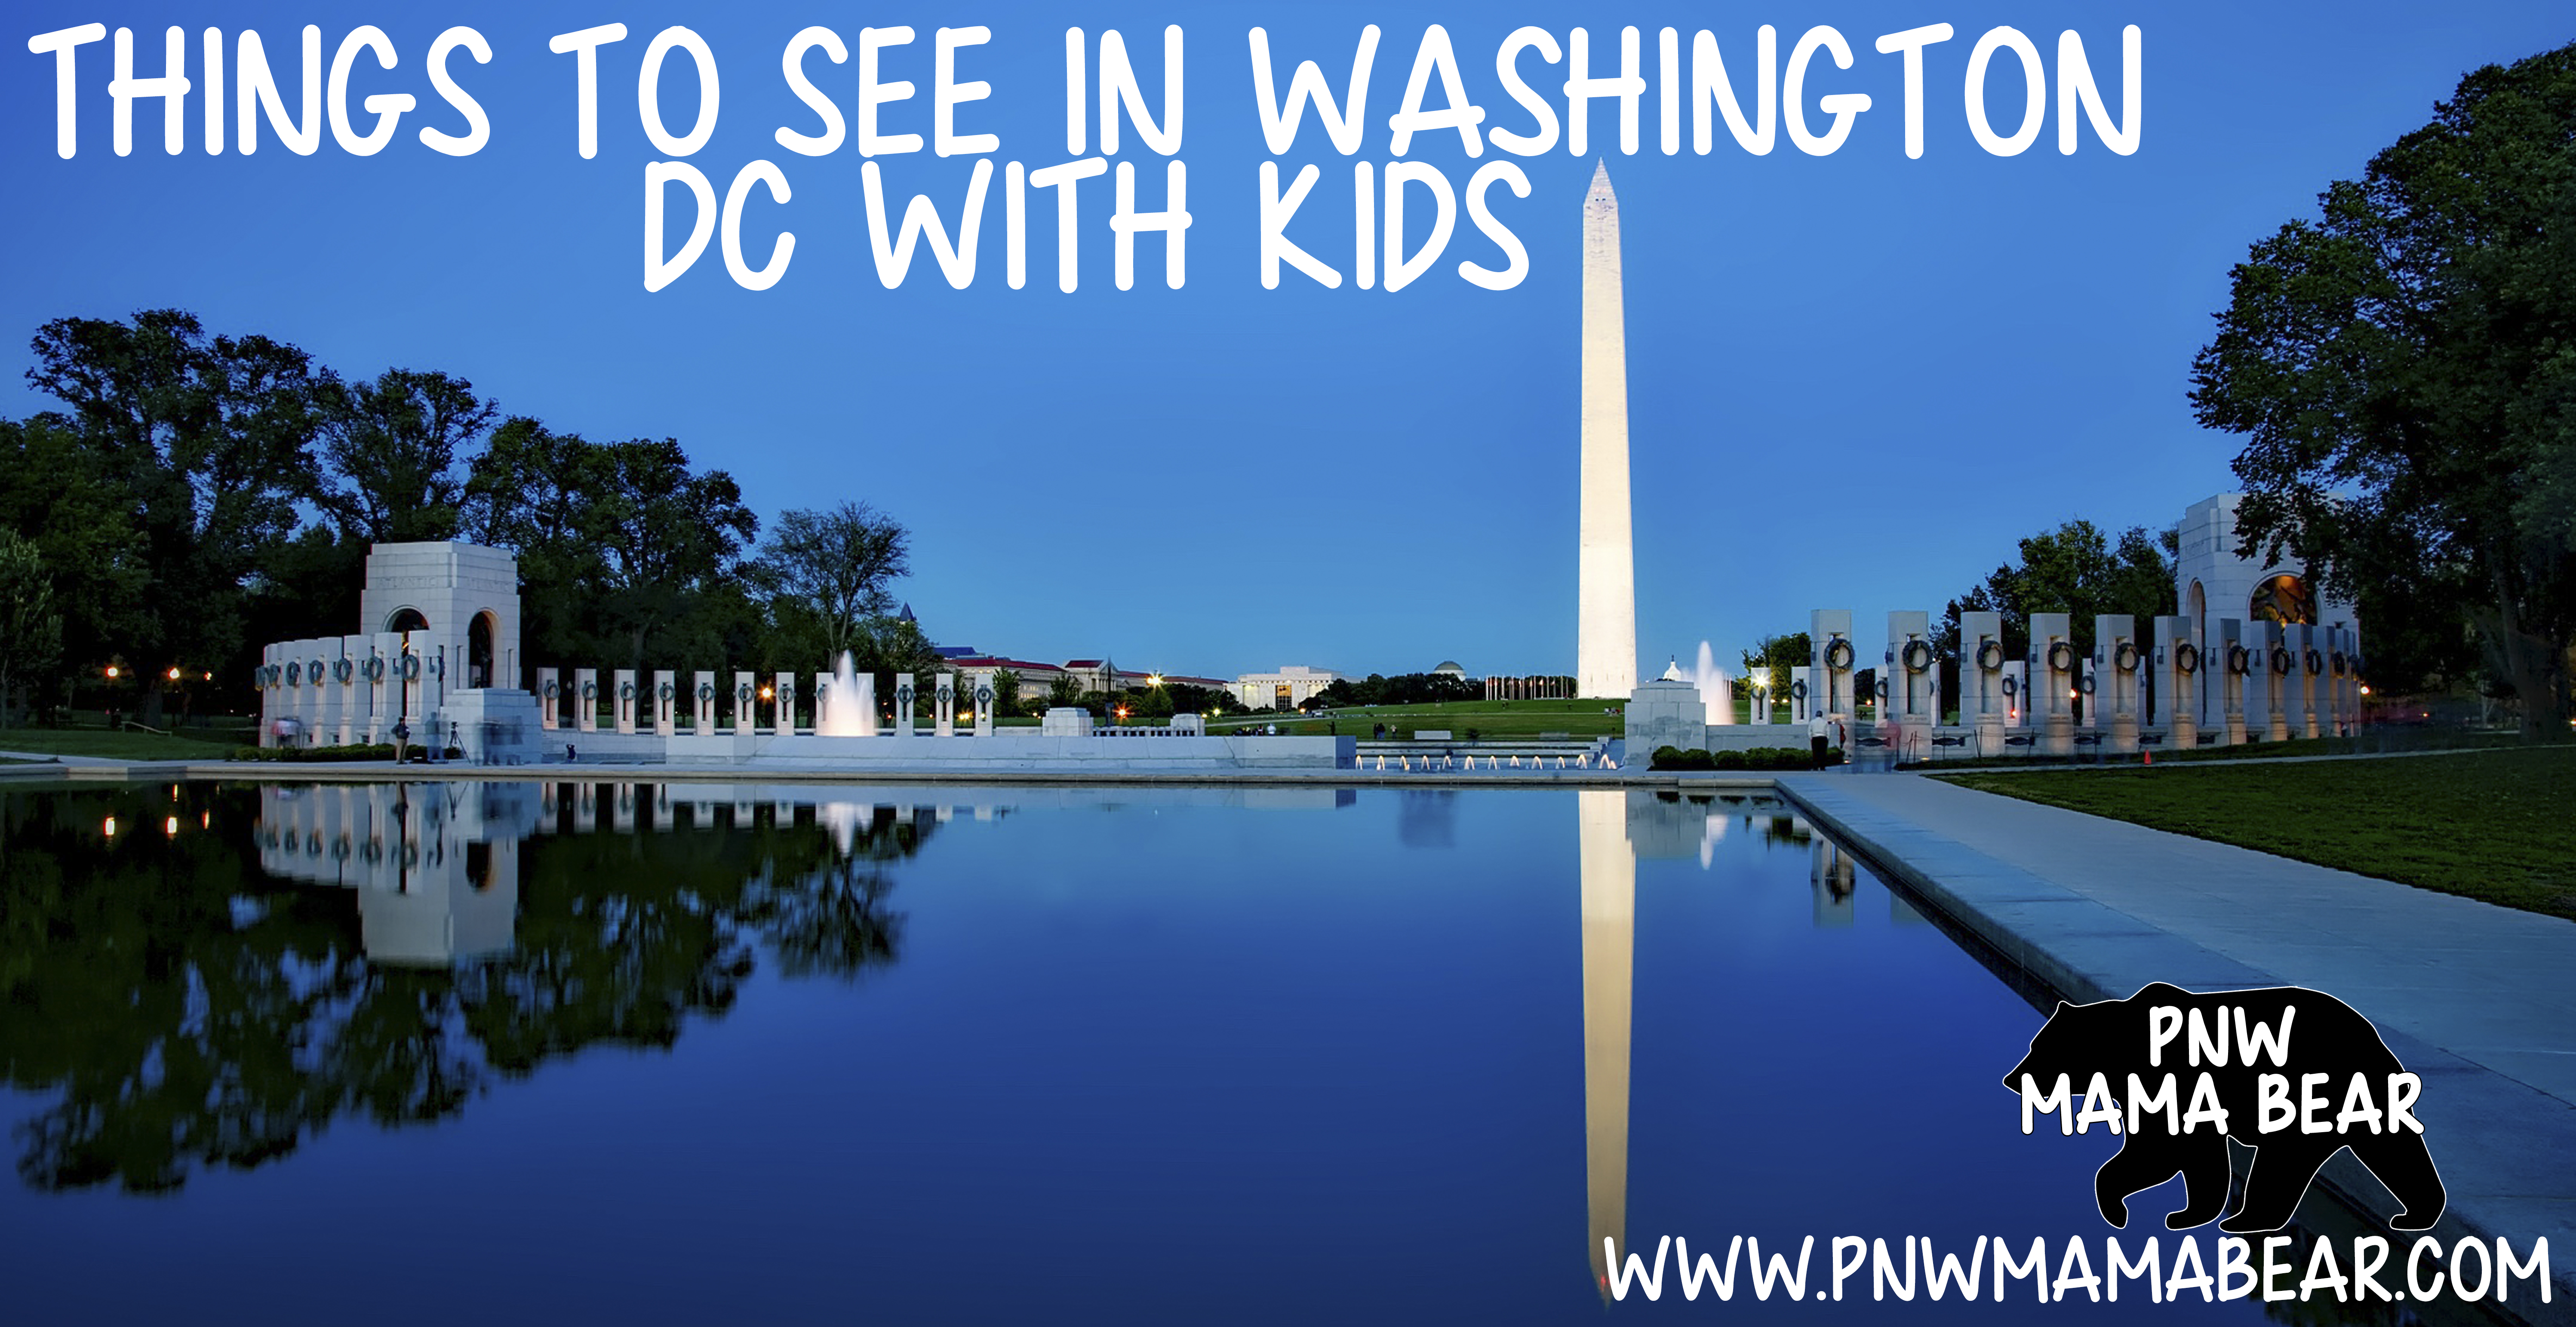 Things to See in Washington DC with Kids by PNW Mama Bear